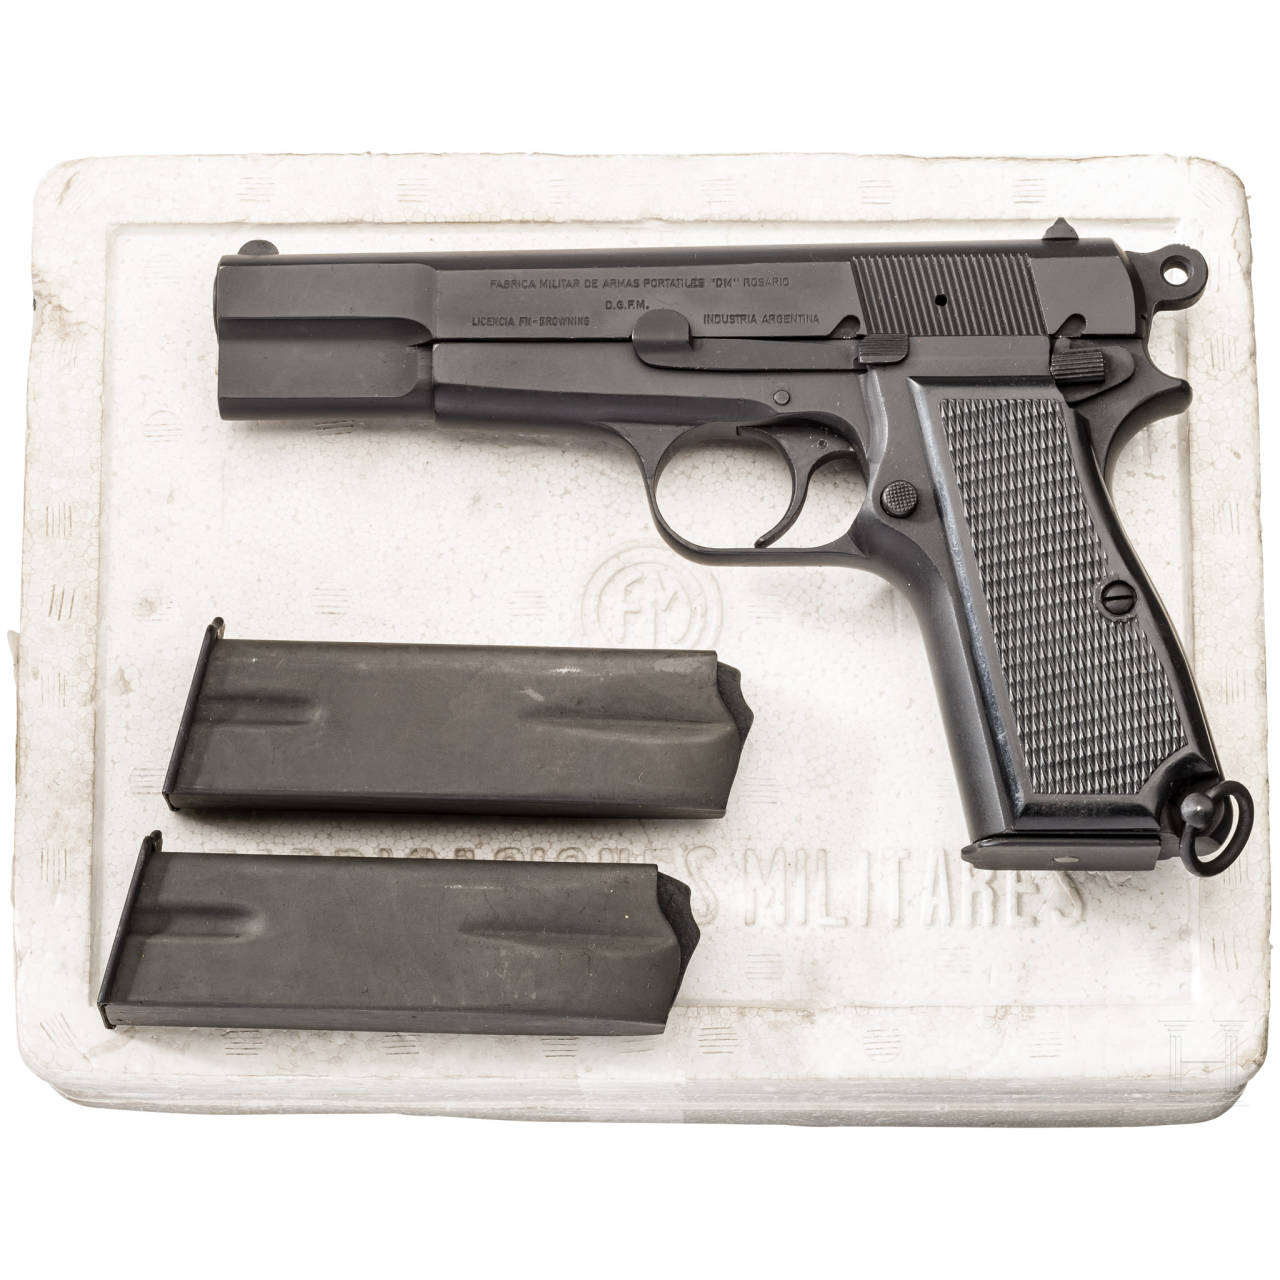 FN-Browning, D.G.F.M., in Box